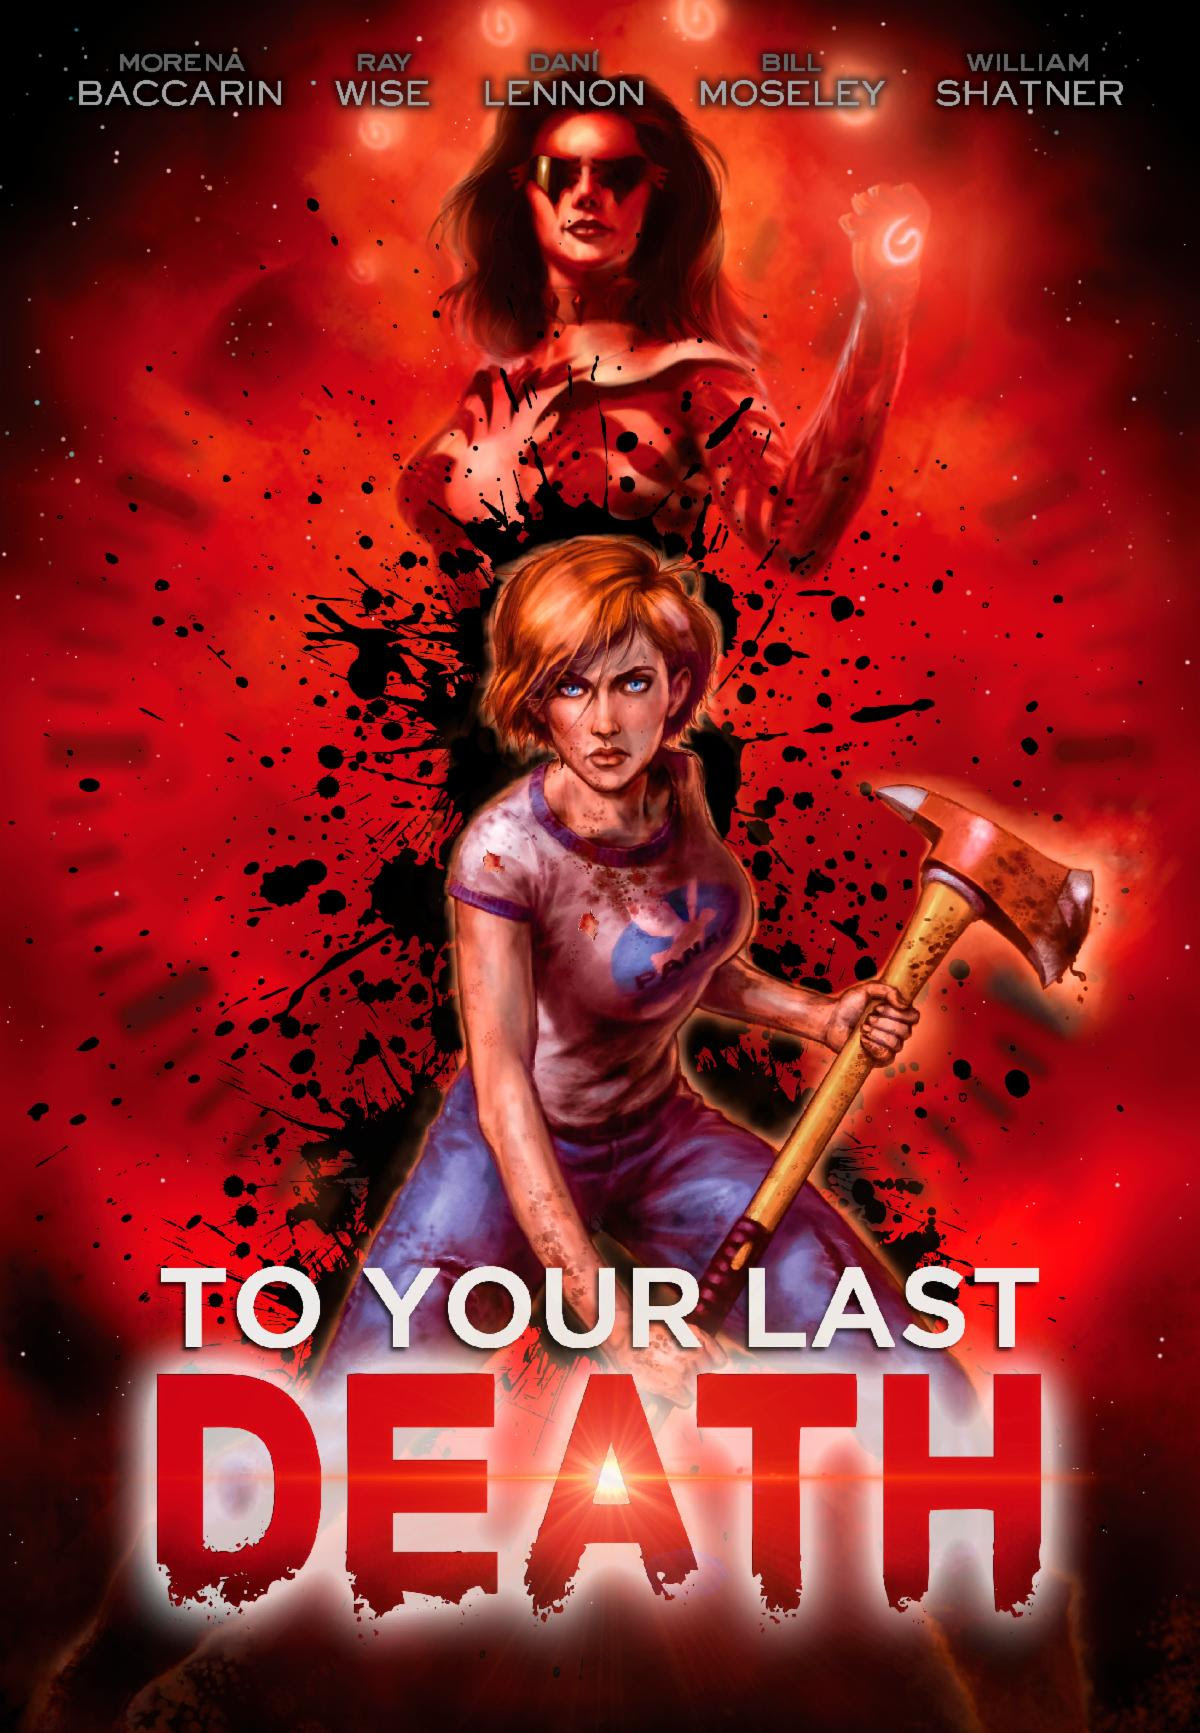 Film Review: TO YOUR LAST DEATH (2019)